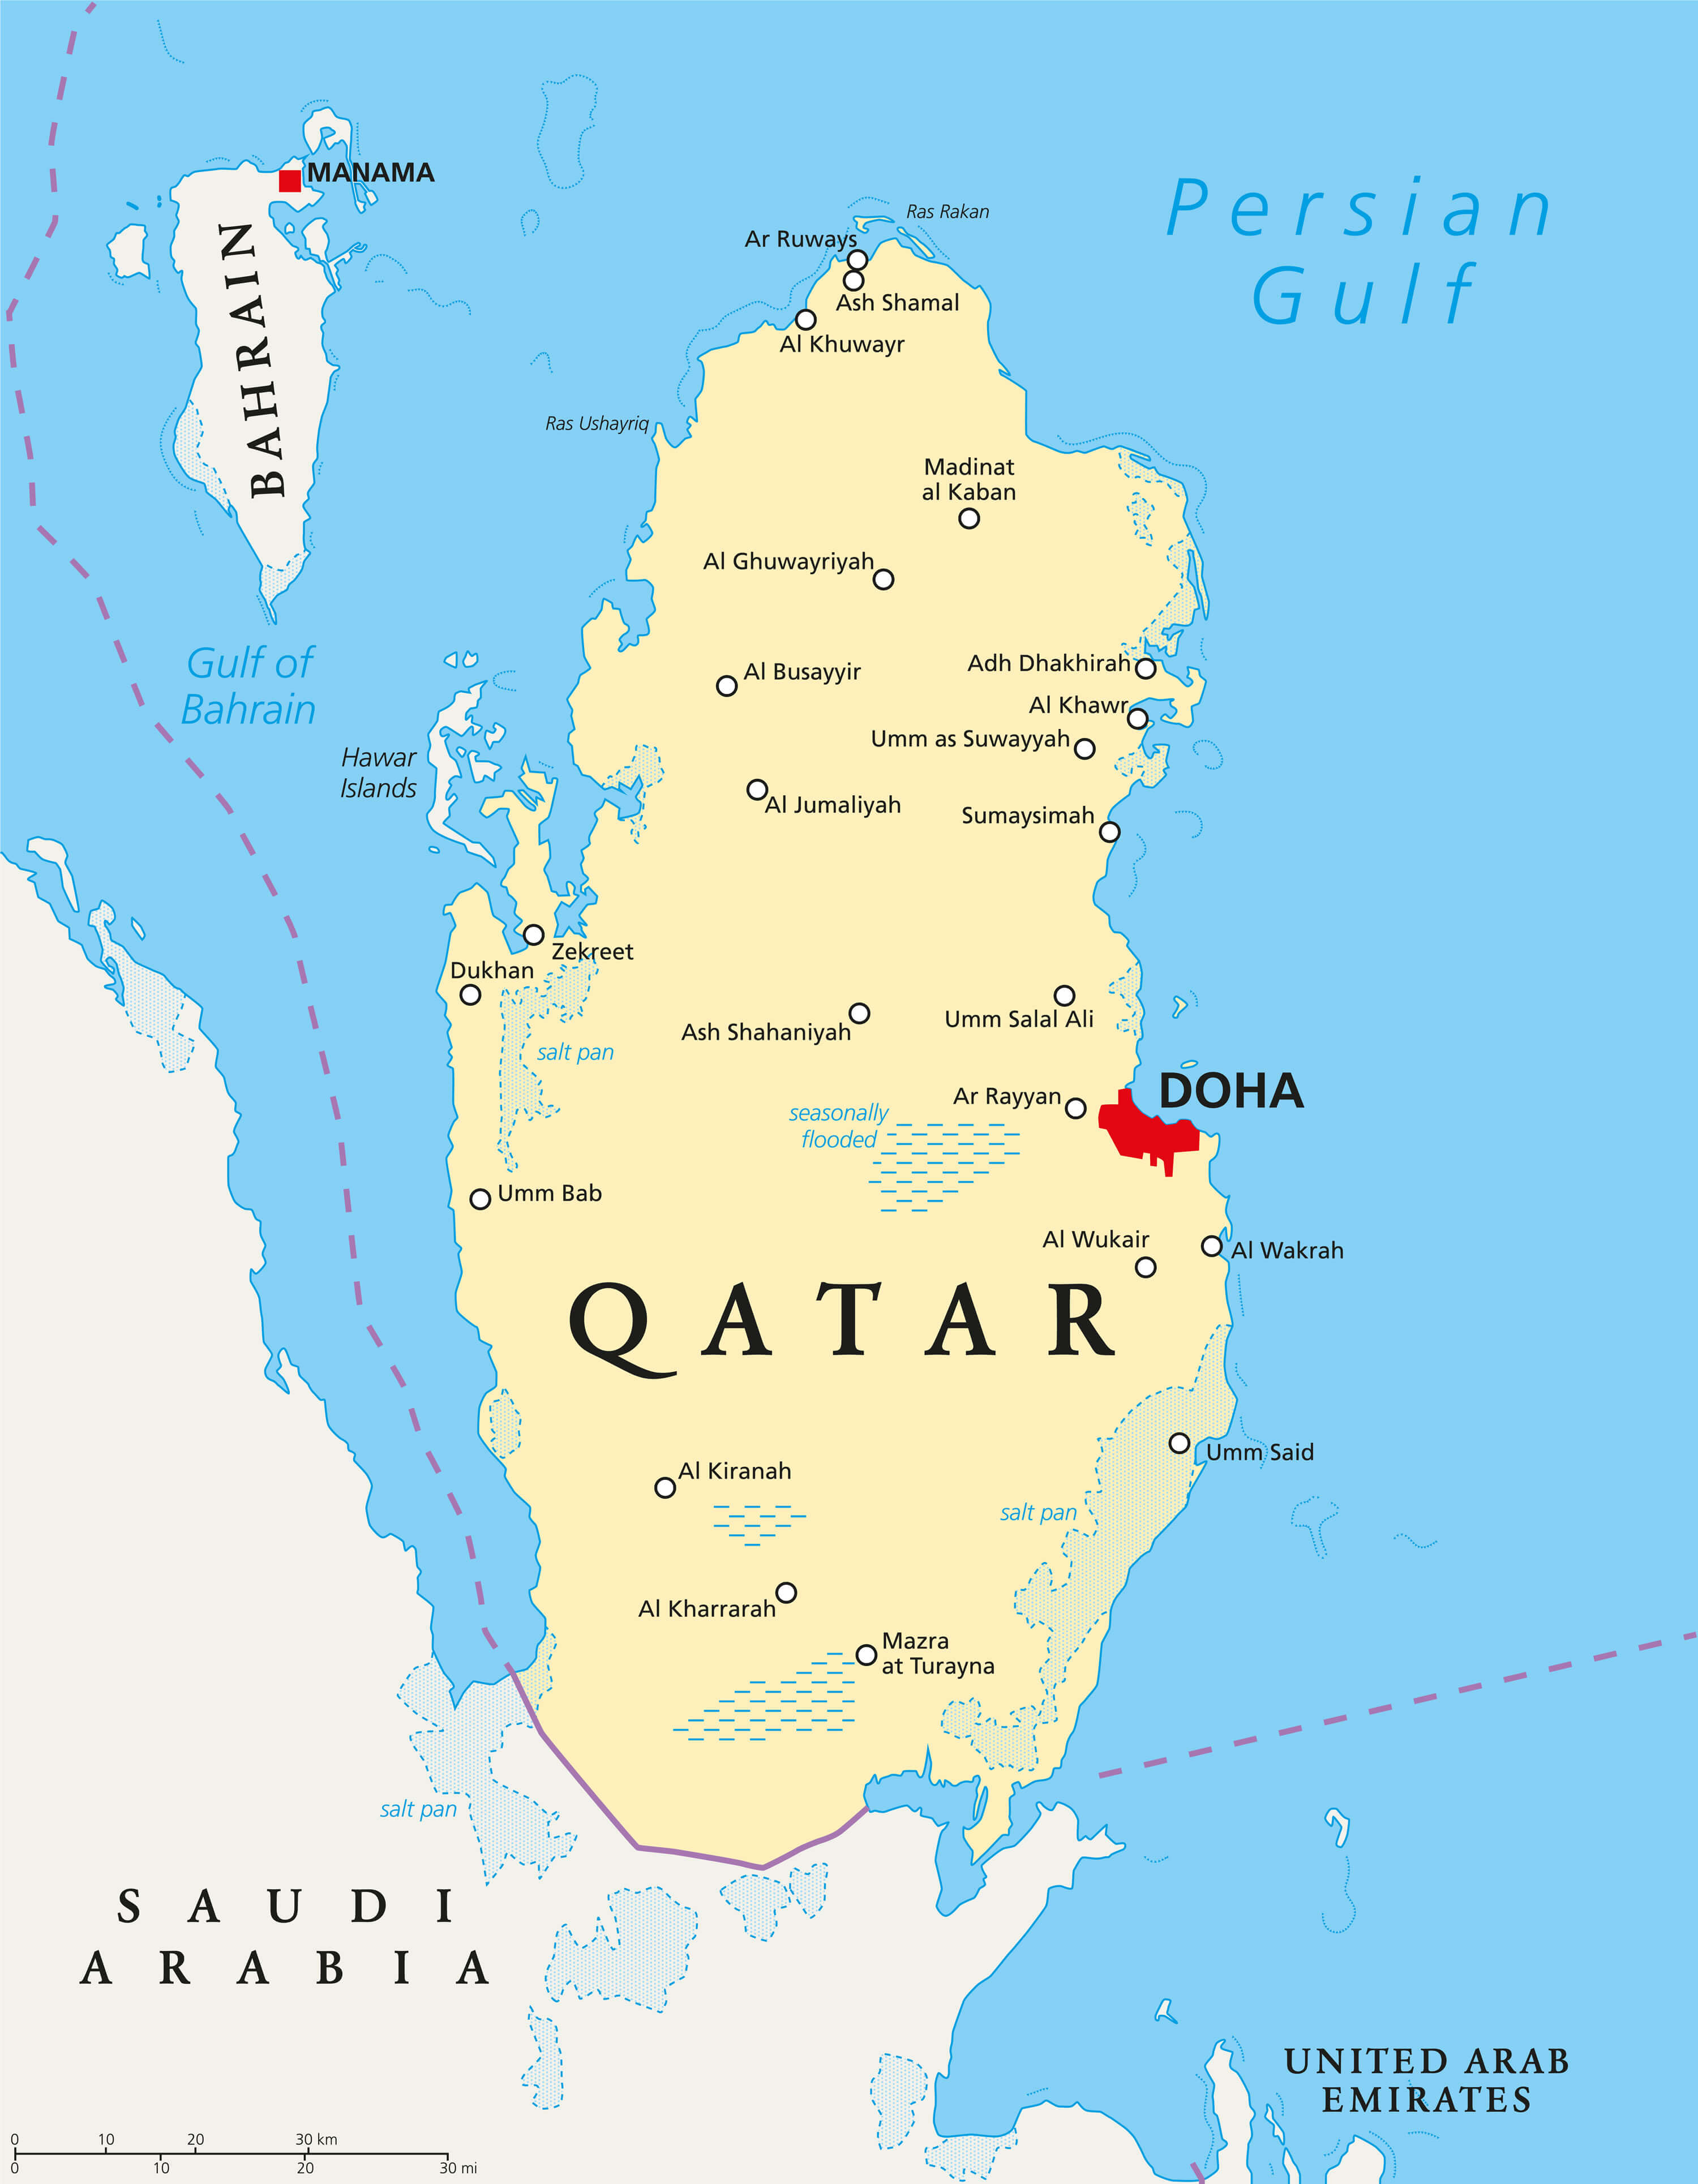 Qatar Map - Guide of the World on jordan on a map, arabian peninsula on a map, arabian sea on a map, middle east on a map, baghdad on a map, west bank on a map, gaza strip on a map, turkmenistan on a map, tunisia on a map, russia on a map, swaziland on a map, iran on a map, dead sea on a map, singapore on a map, kuwait on a map, bahrain on a map, palestine on a map, turkey on a map, cyprus on a map, kirkuk on a map,